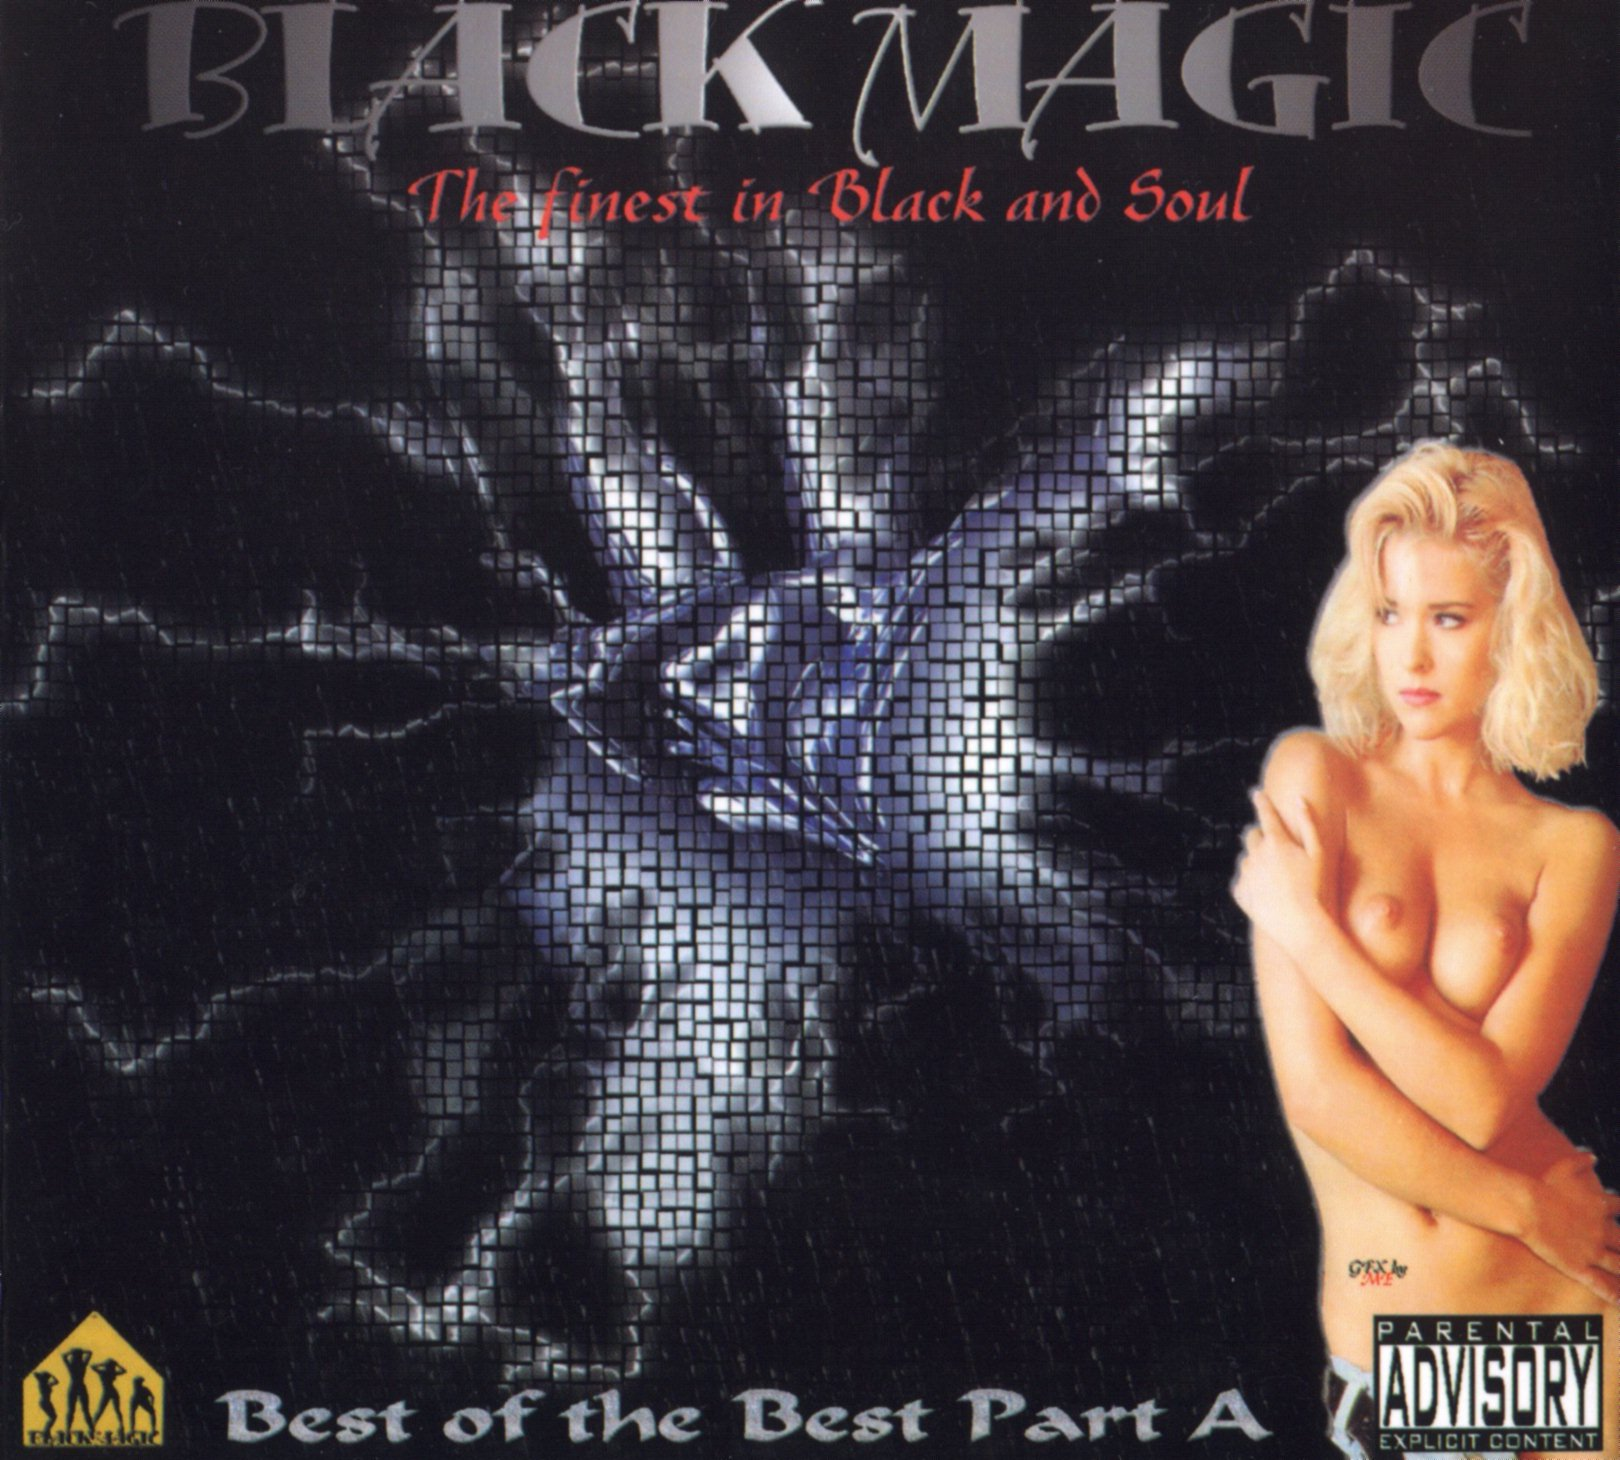 Black Magic - The Finest In Black & Soul Part A